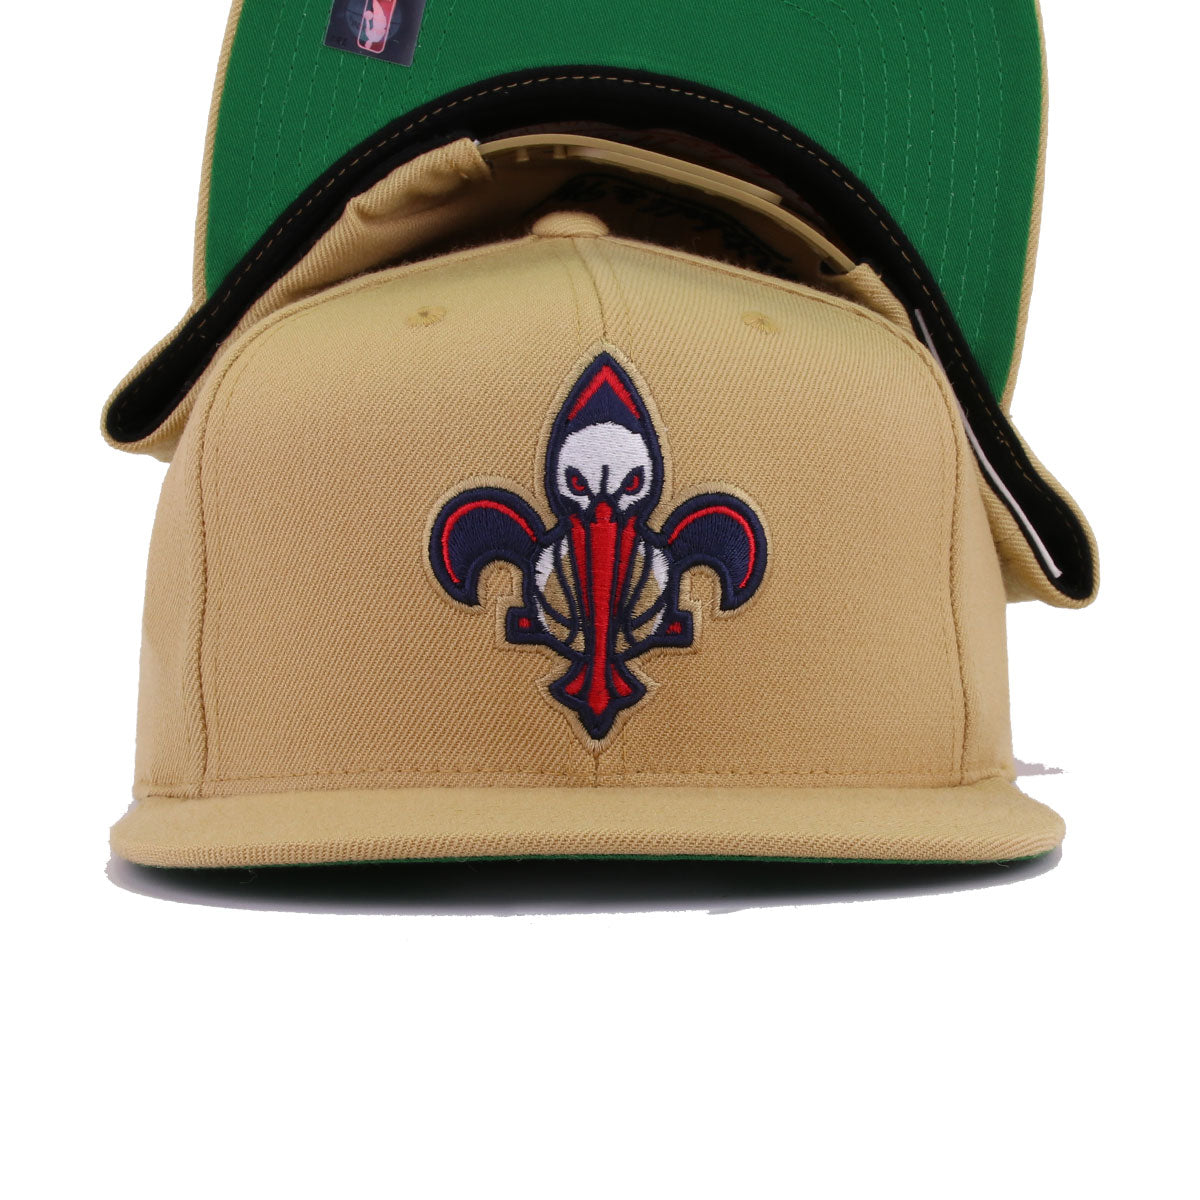 New Orleans Pelicans Nop Gold Fleur De Lis Mitchell And Ness Snapback